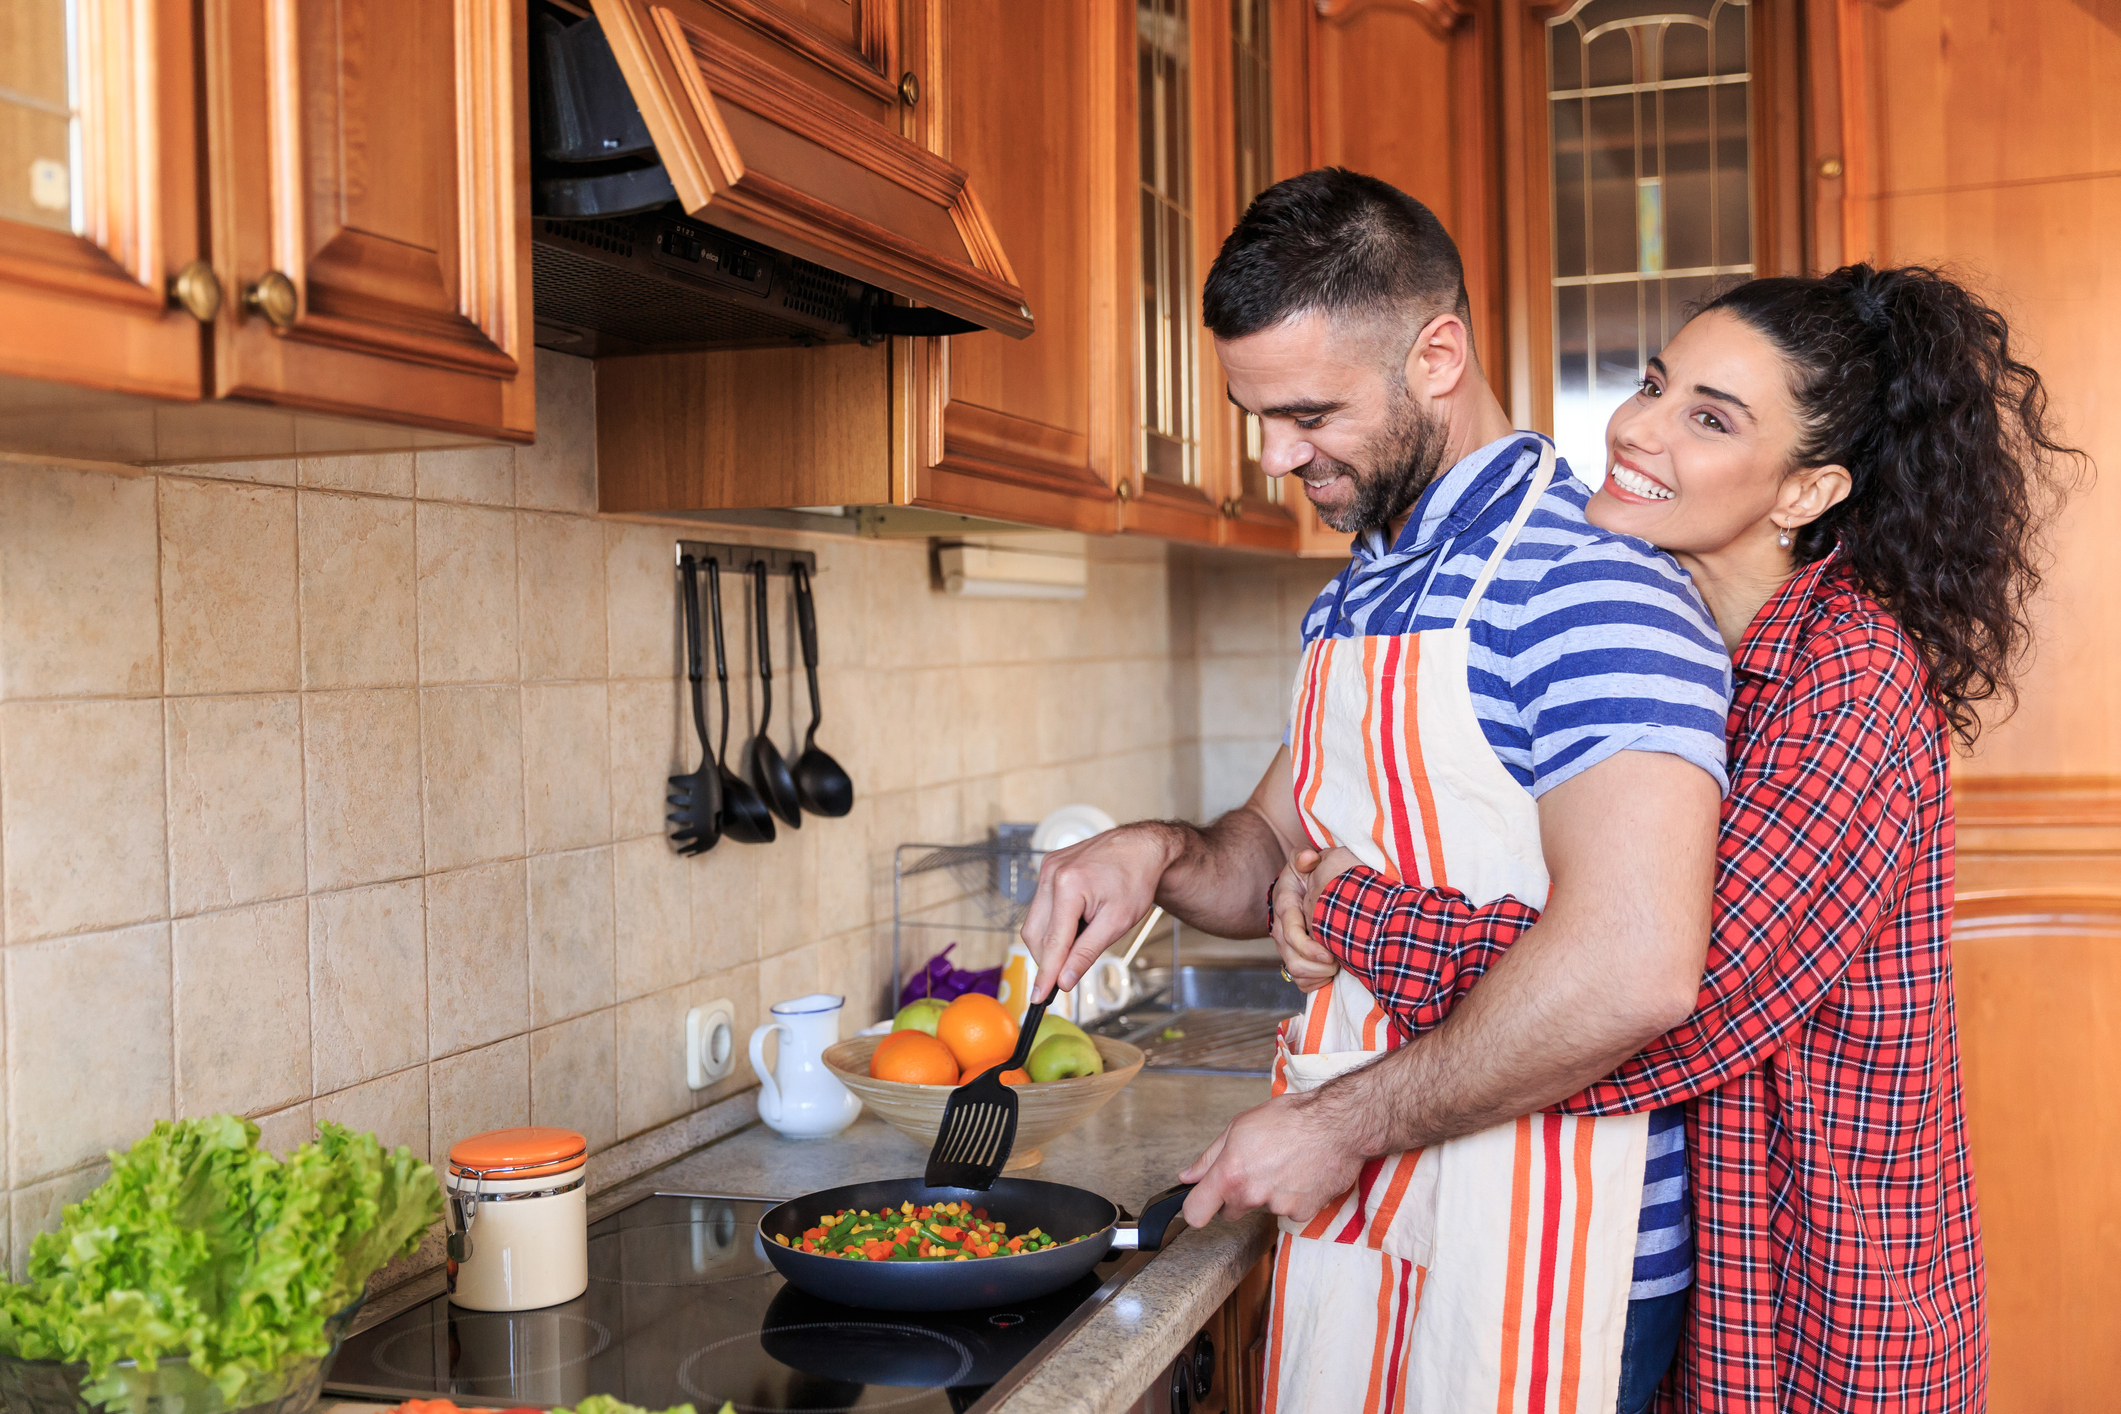 Affordable Romantic Dinner Ideas to Celebrate Valentine's Day